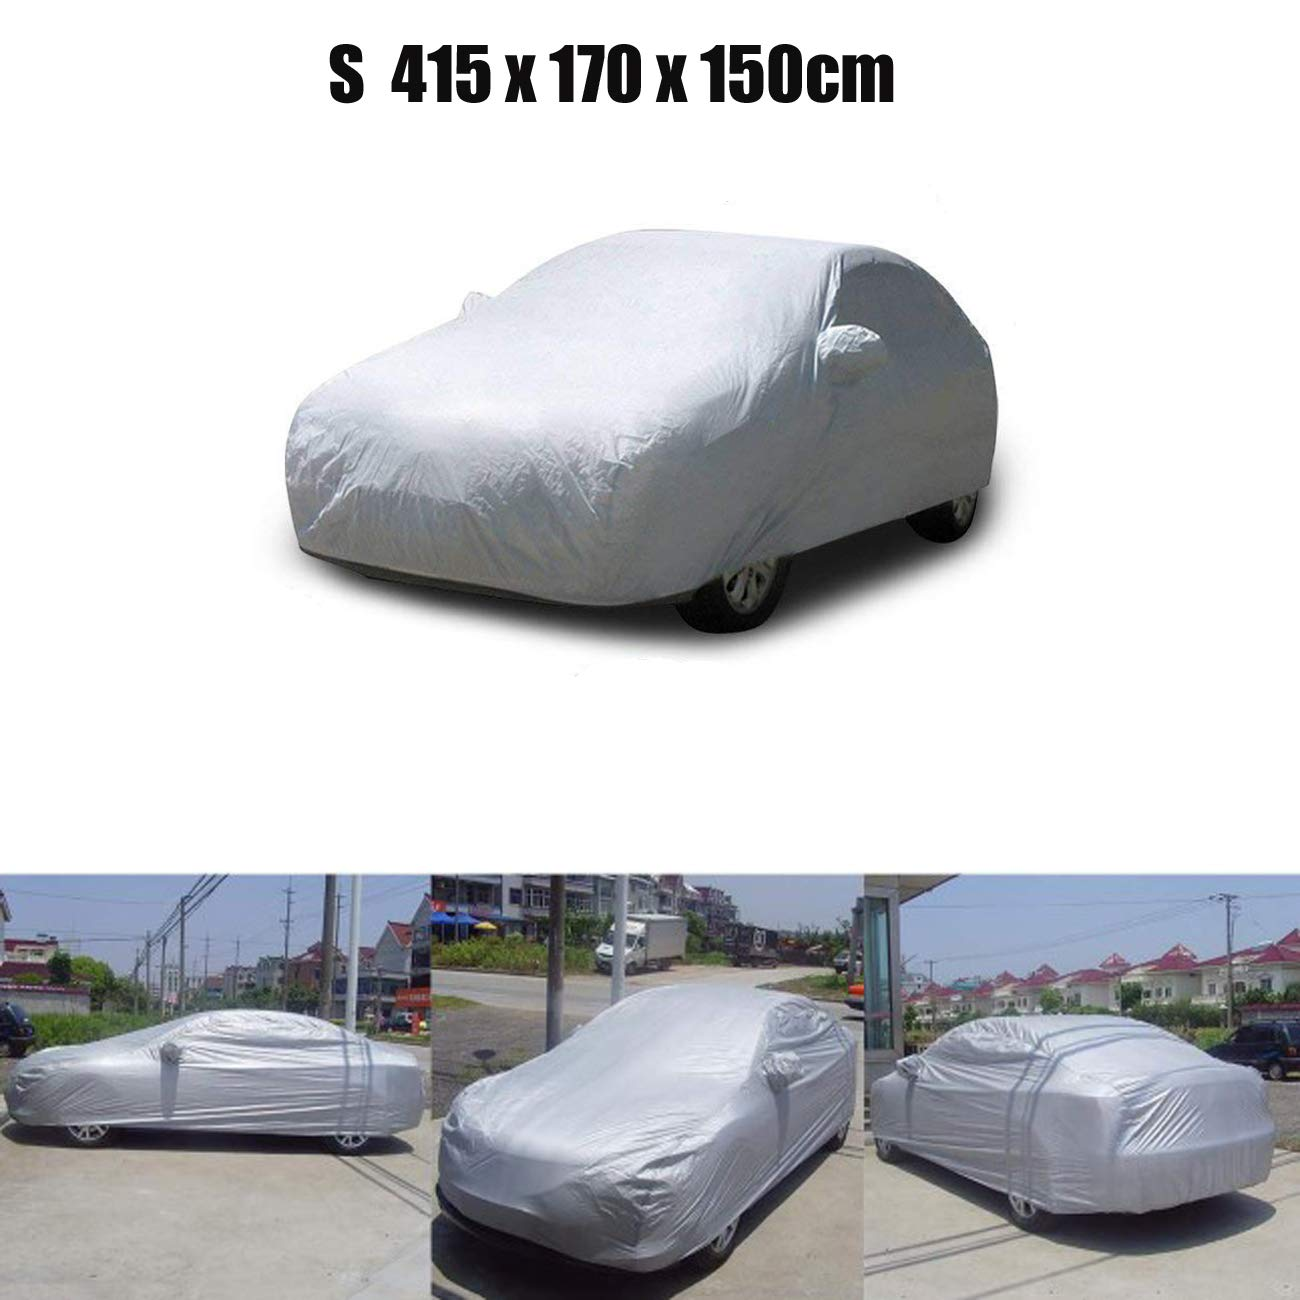 AUDI A4 ESTATE WATERPROOF LUXURY PREMIUM CAR COVER COTTON LINED HEAVY DUTY